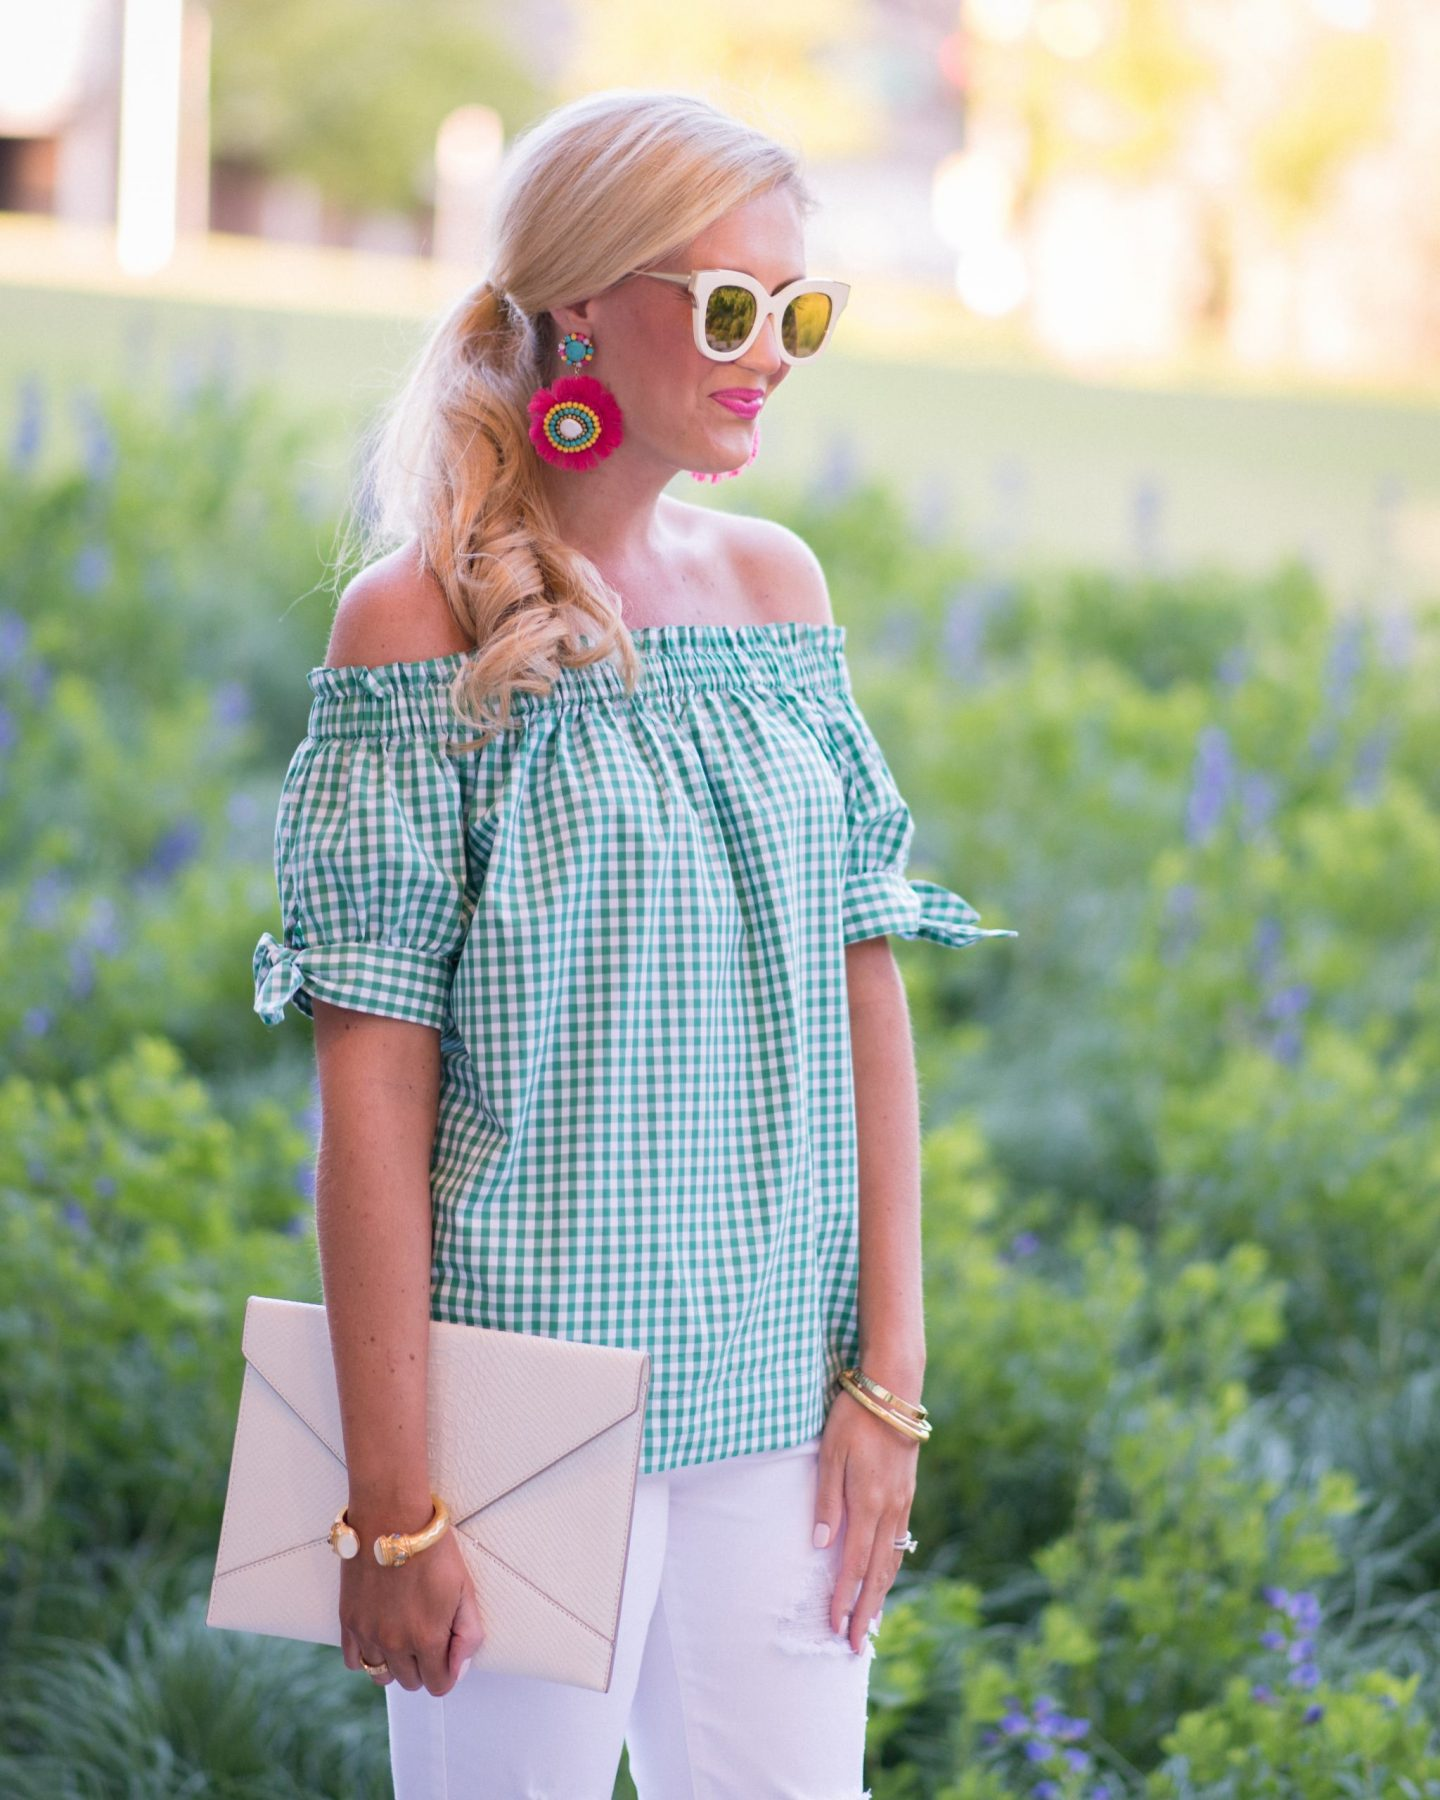 Green Gingham + Pops of Pink